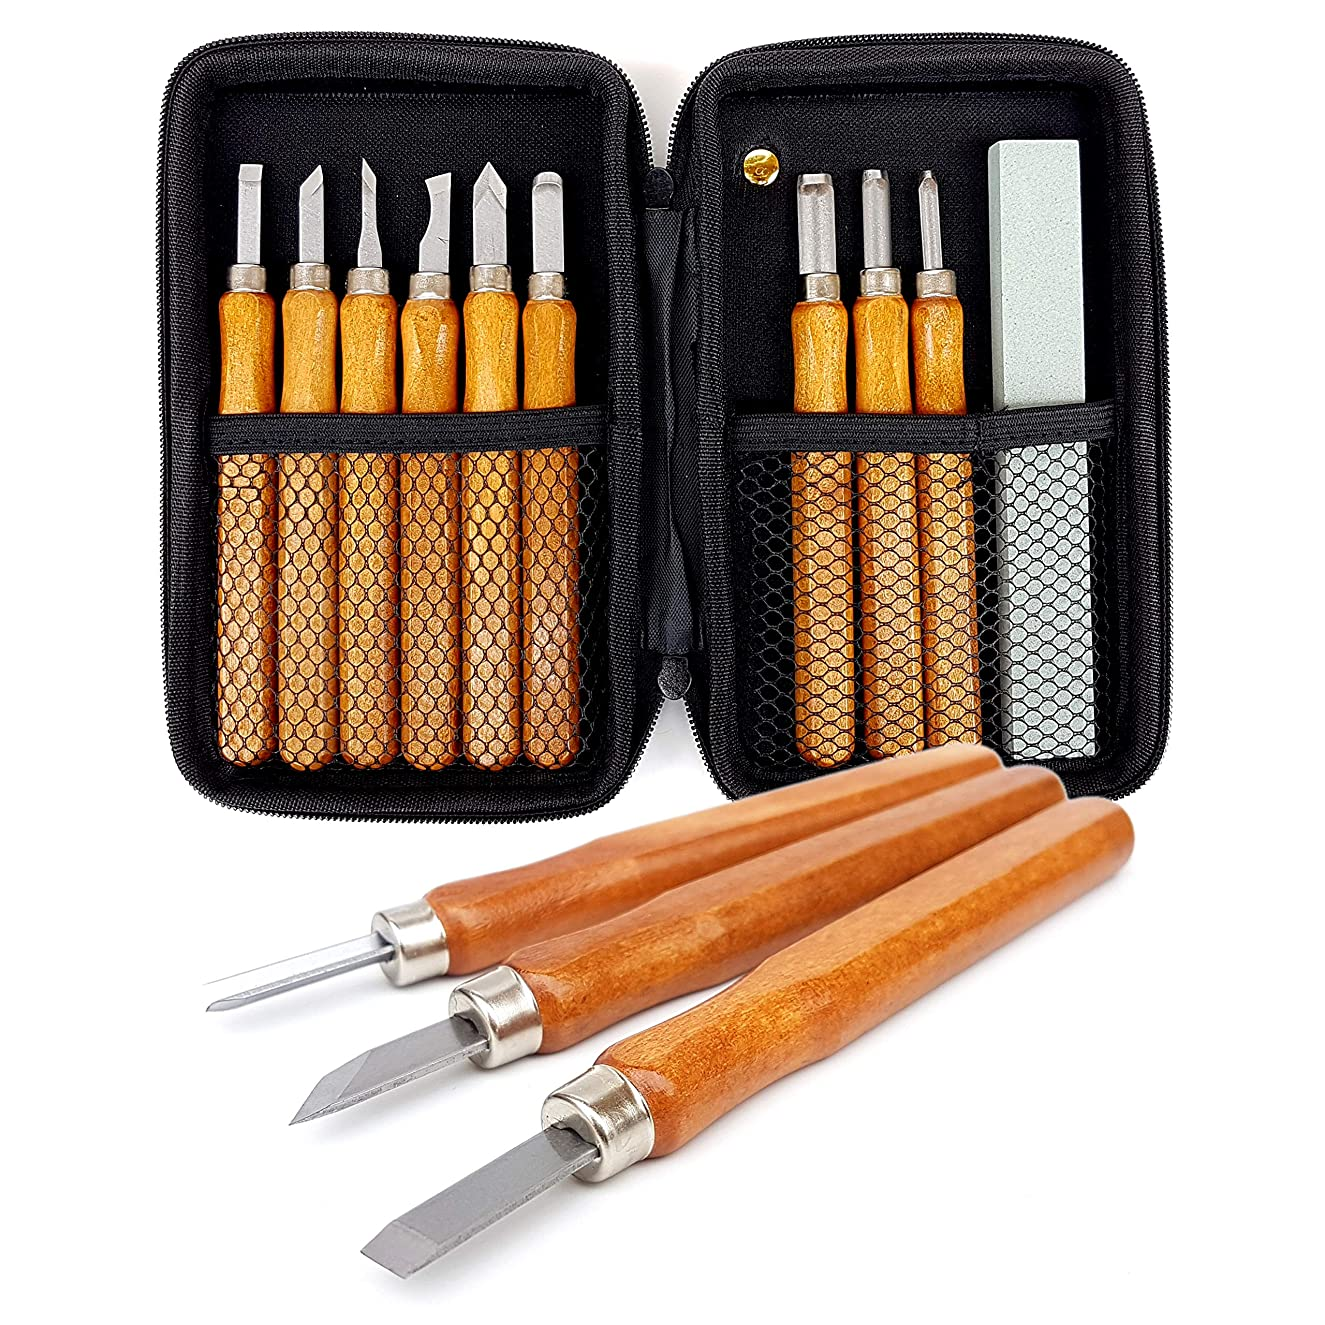 14 Piece Set Beginners Carving Kit with Protective Case, Chisels, Gouges, Scraper, V Parting Tool, Whetstones   for Wood, Clay, Sculpting, Whittling, Pumpkin, Balsa, Wax, Linoleum